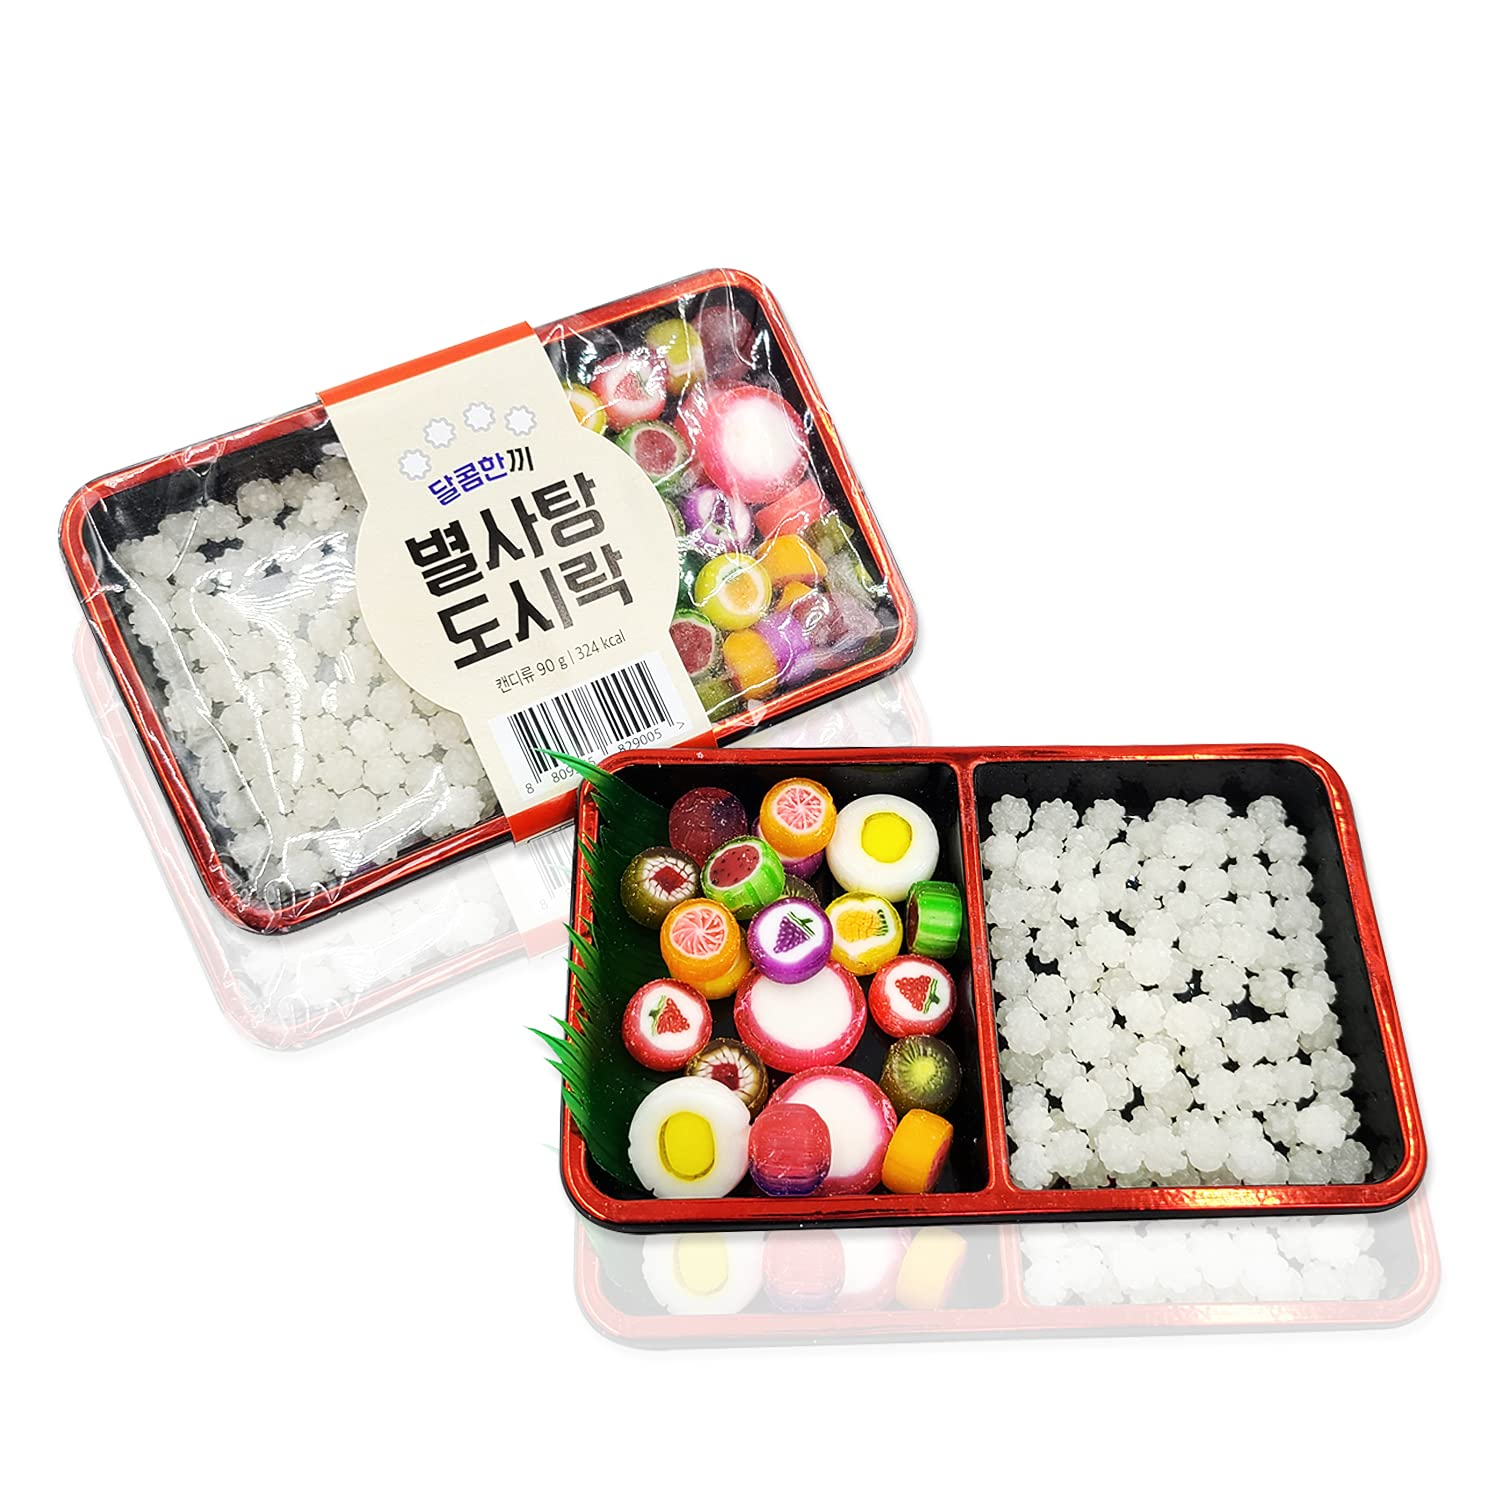 TREE FARM Star Candy Lunchbox 5-Set   Fun Size Candy Variety   Asian Candy Box   Sushi Candy   Weird Candy Food   Birthday Candy   Candy Sushi Tray   Unique Candy Gifts   Cool Candy   Tik Tok Candy